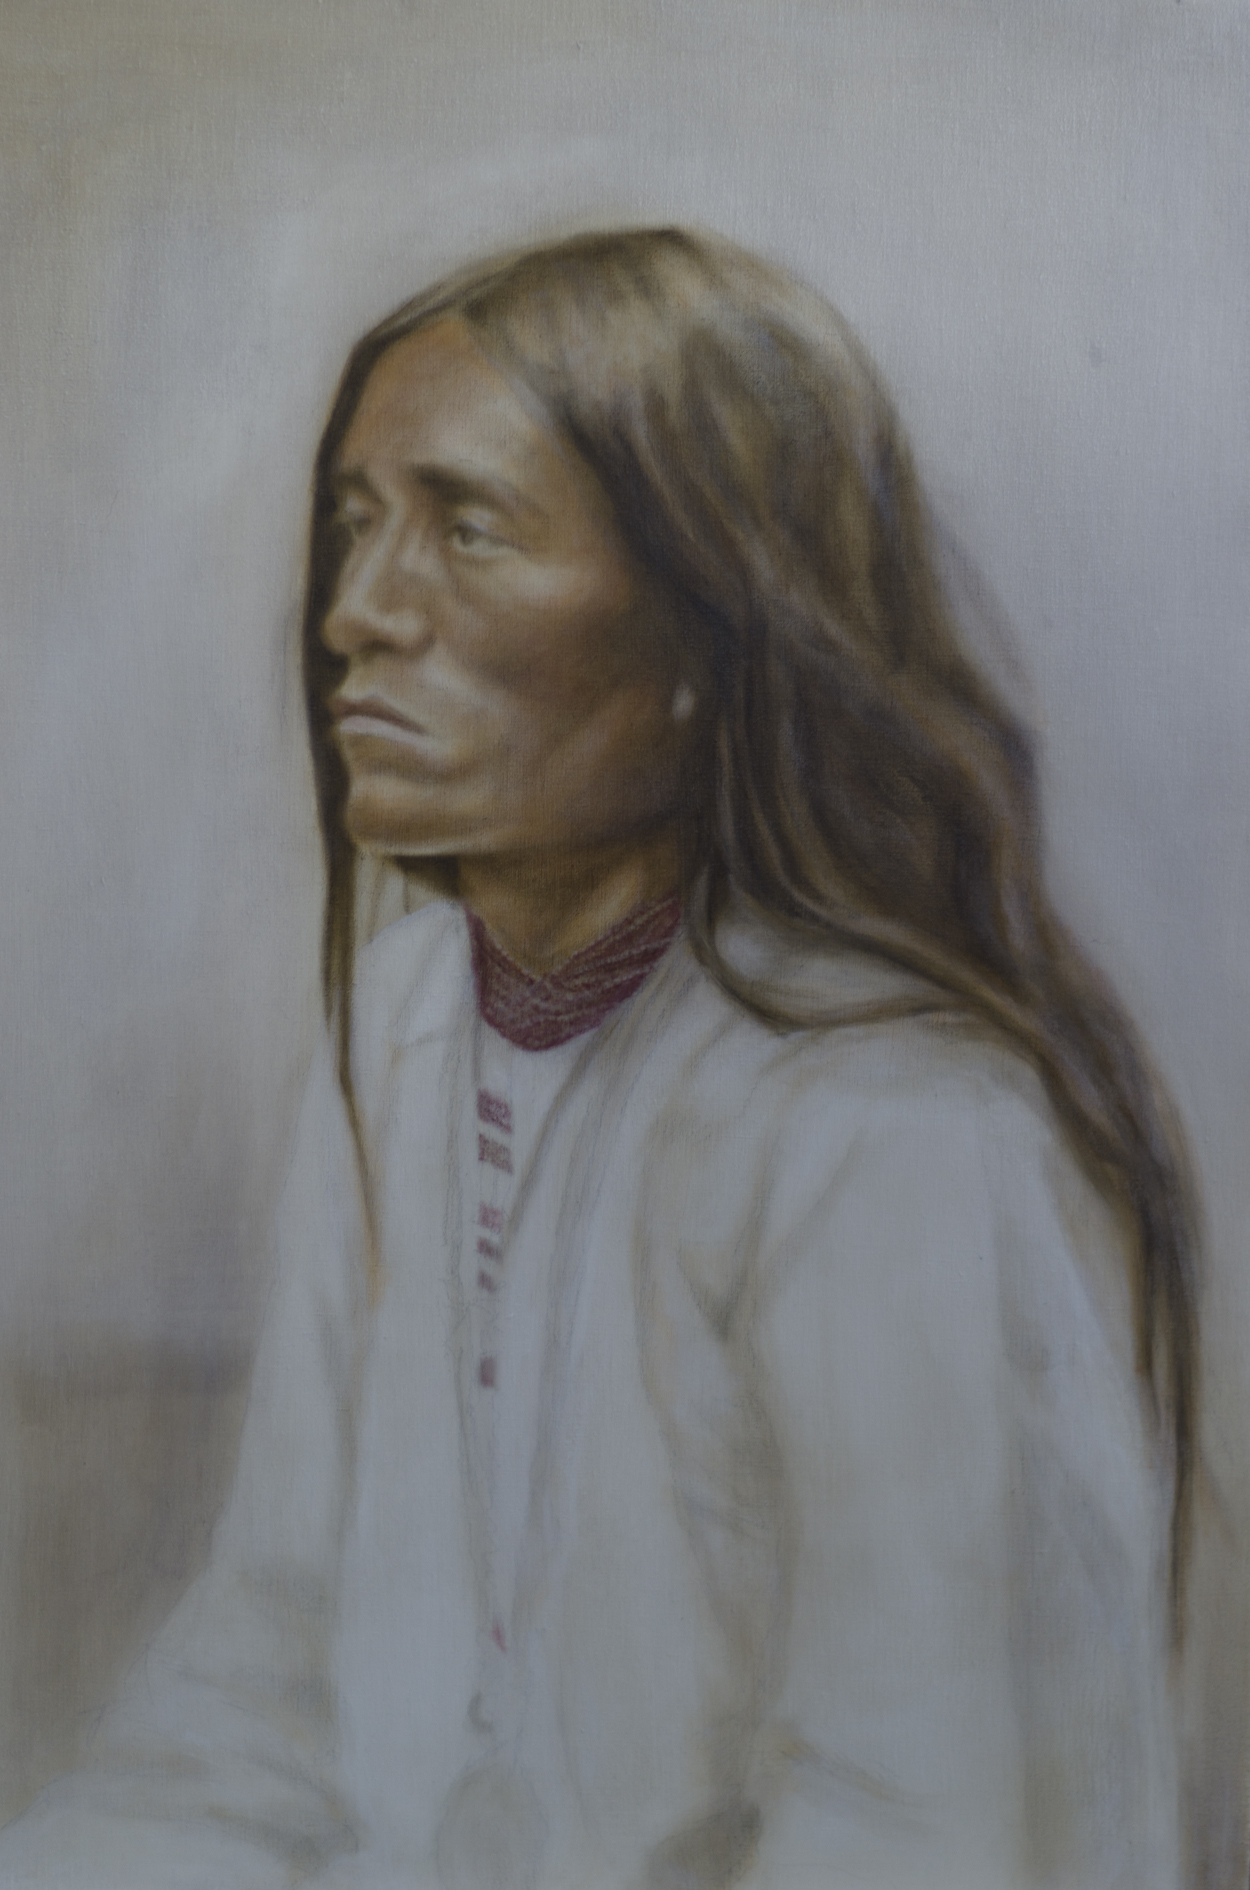 """Work In Progress - """"Notalq - Apache Man"""" ©2012 Janice Tanton. Oil and silver leaf on linen. 24""""x30"""""""